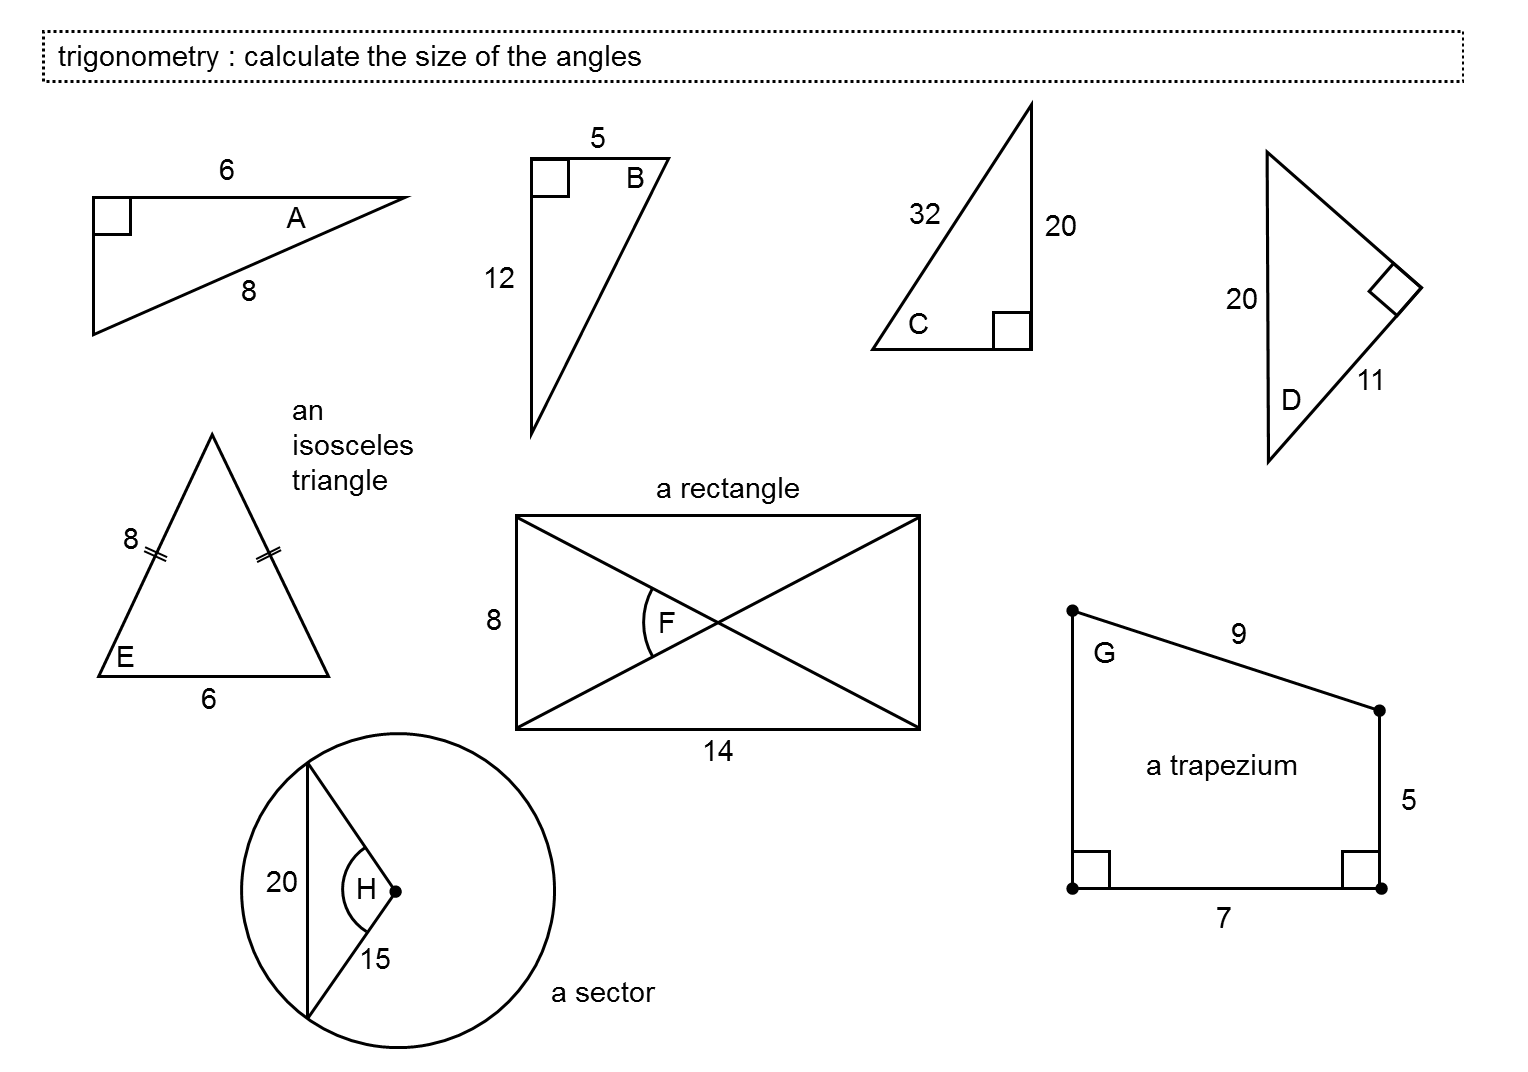 worksheet Trig Graphs Worksheet resourceaholic teaching trigonometry my students have a melt down when i give them problem that involves and bearings suspect this is because school doesnt teach bearings